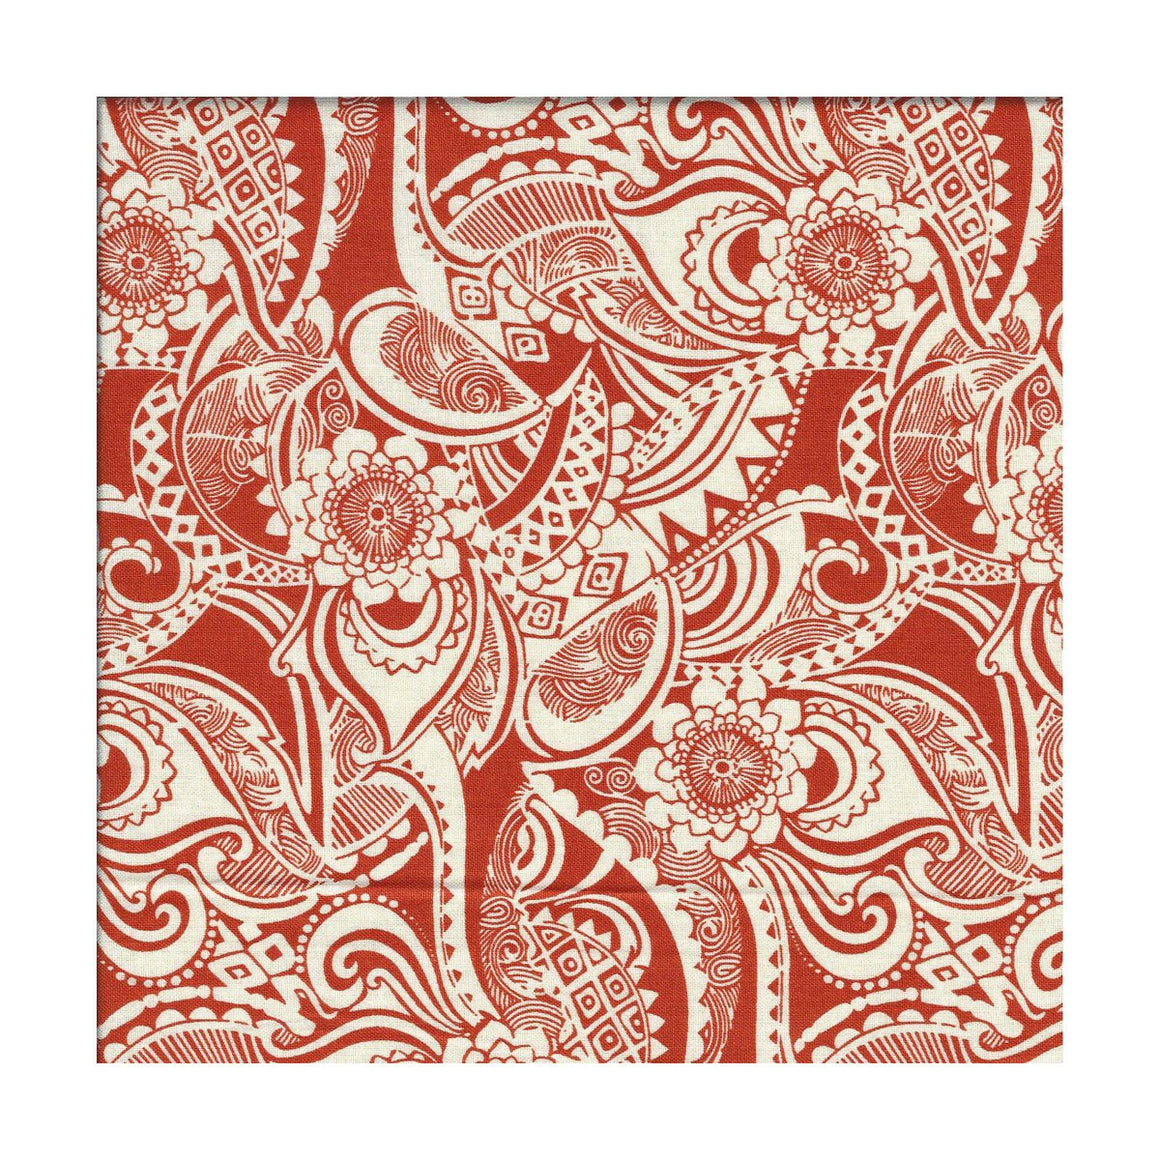 bandana, orange tribal print, exclusive, unique to bazooka bandanas